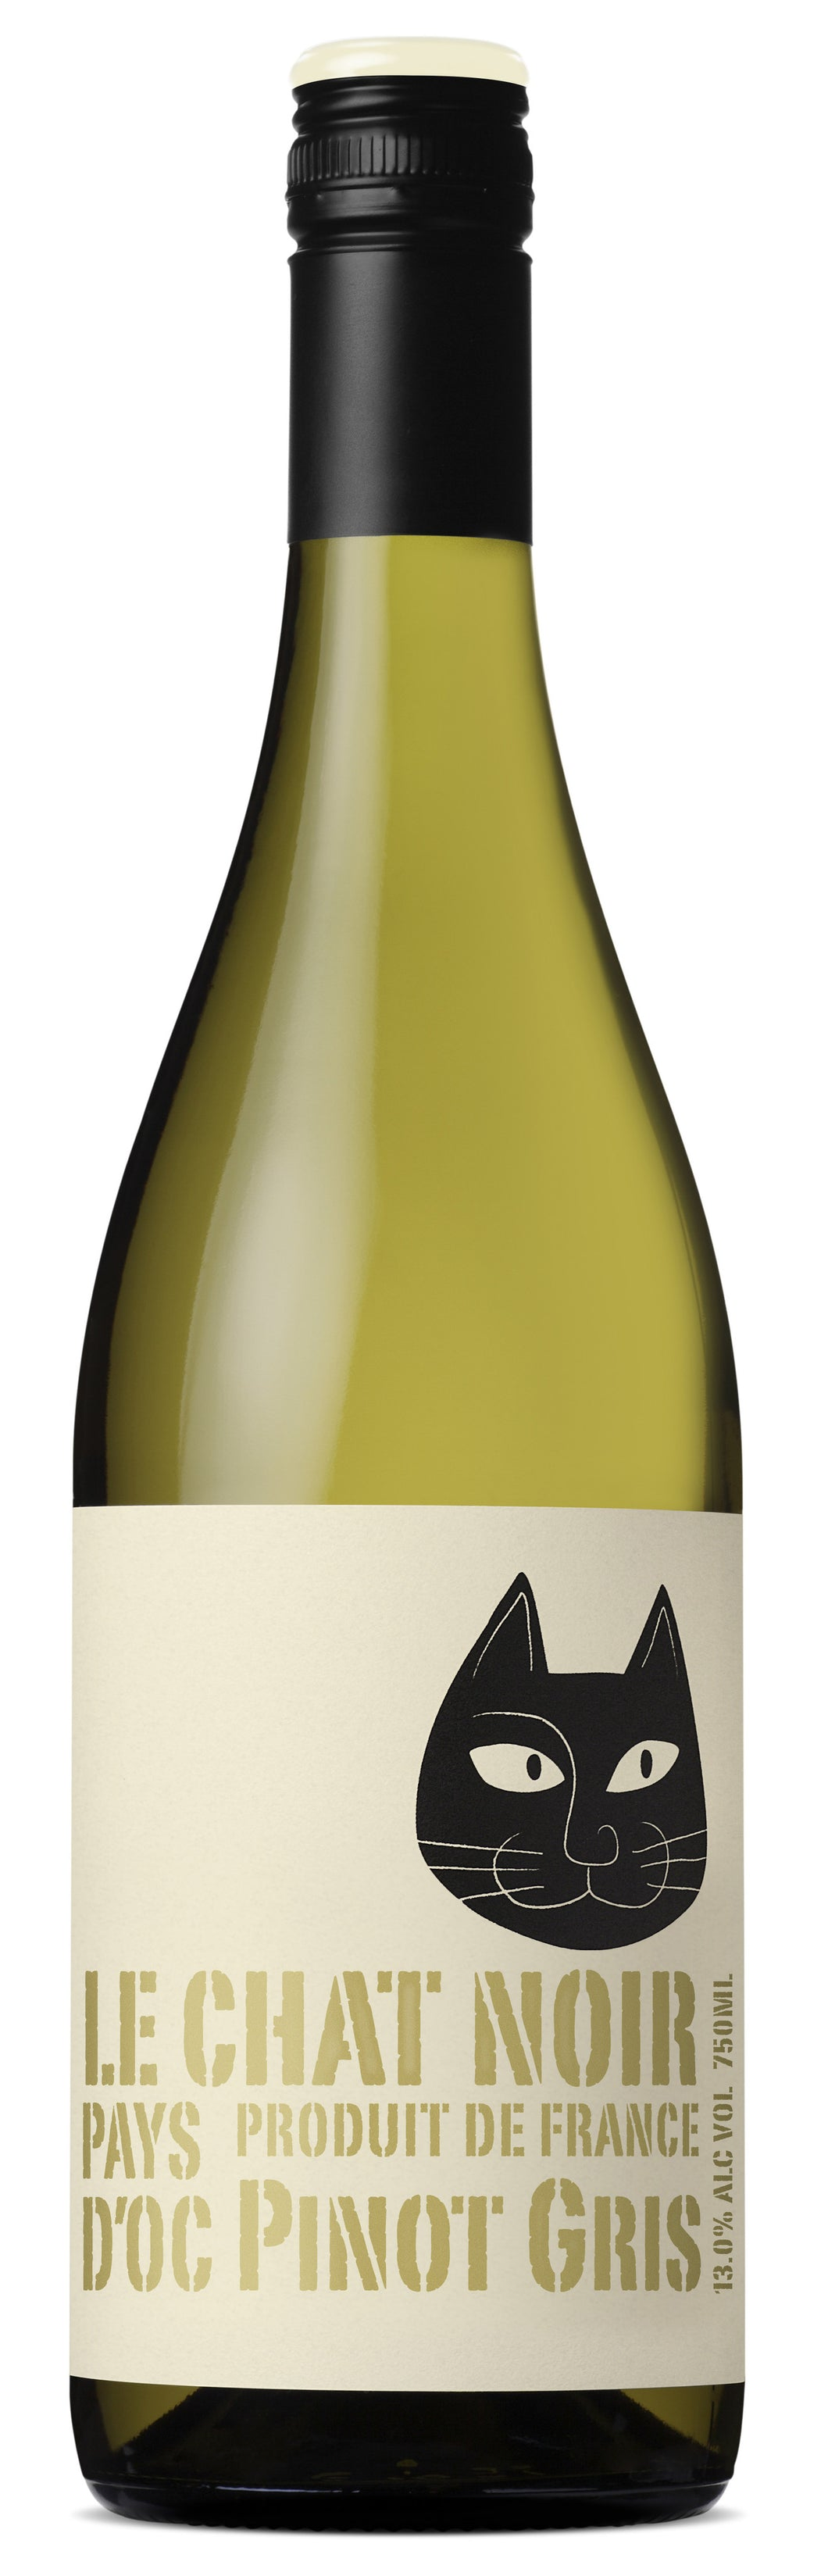 Le Chat Noir Pinot Gris 2016 - Network Wines